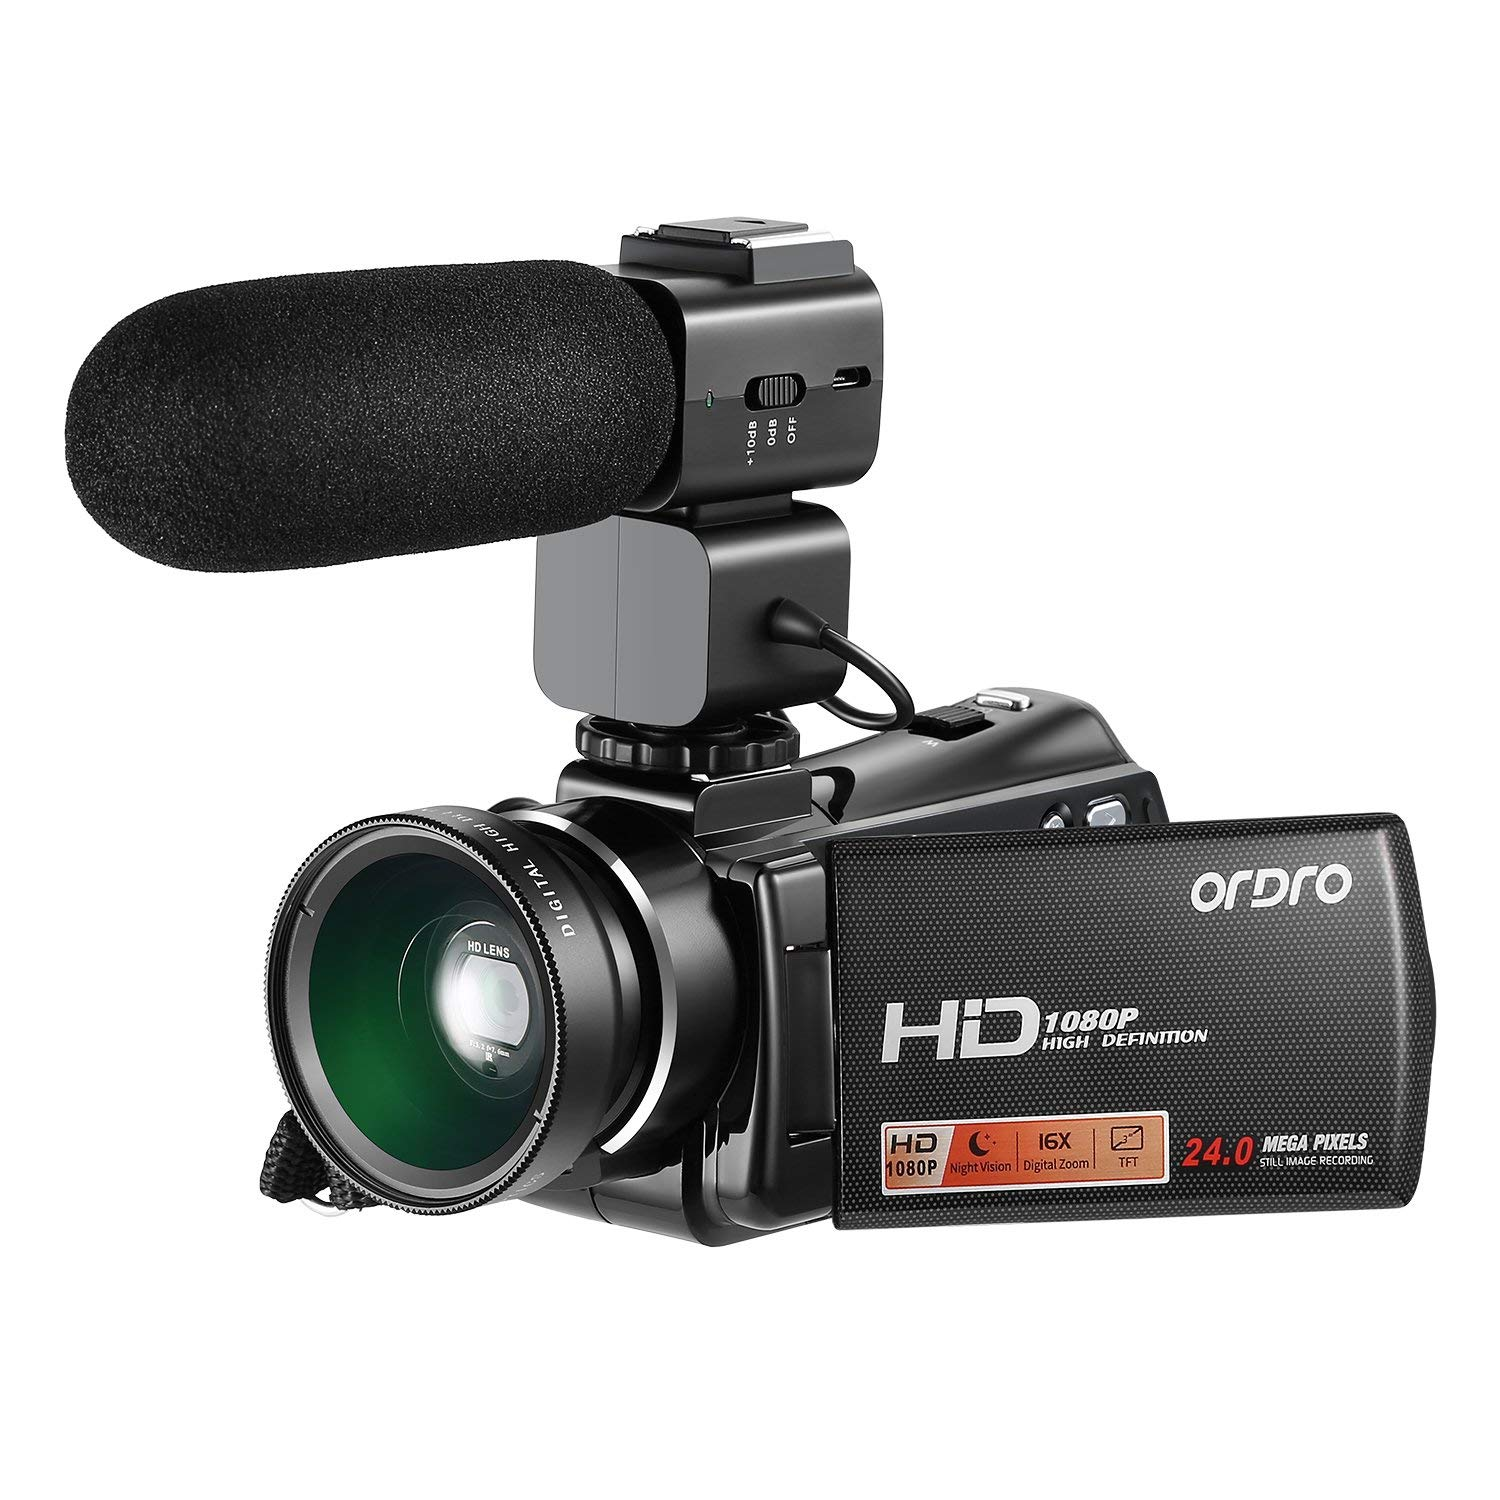 Sanyo Xacti DMX-HD1 Camcorder External Microphone Vidpro XM-AD5 Mini Pre-Amp Smart Mixer with Dual Condenser Microphones for DSLR/'s with SDC-26 Case Video Cameras and Phones